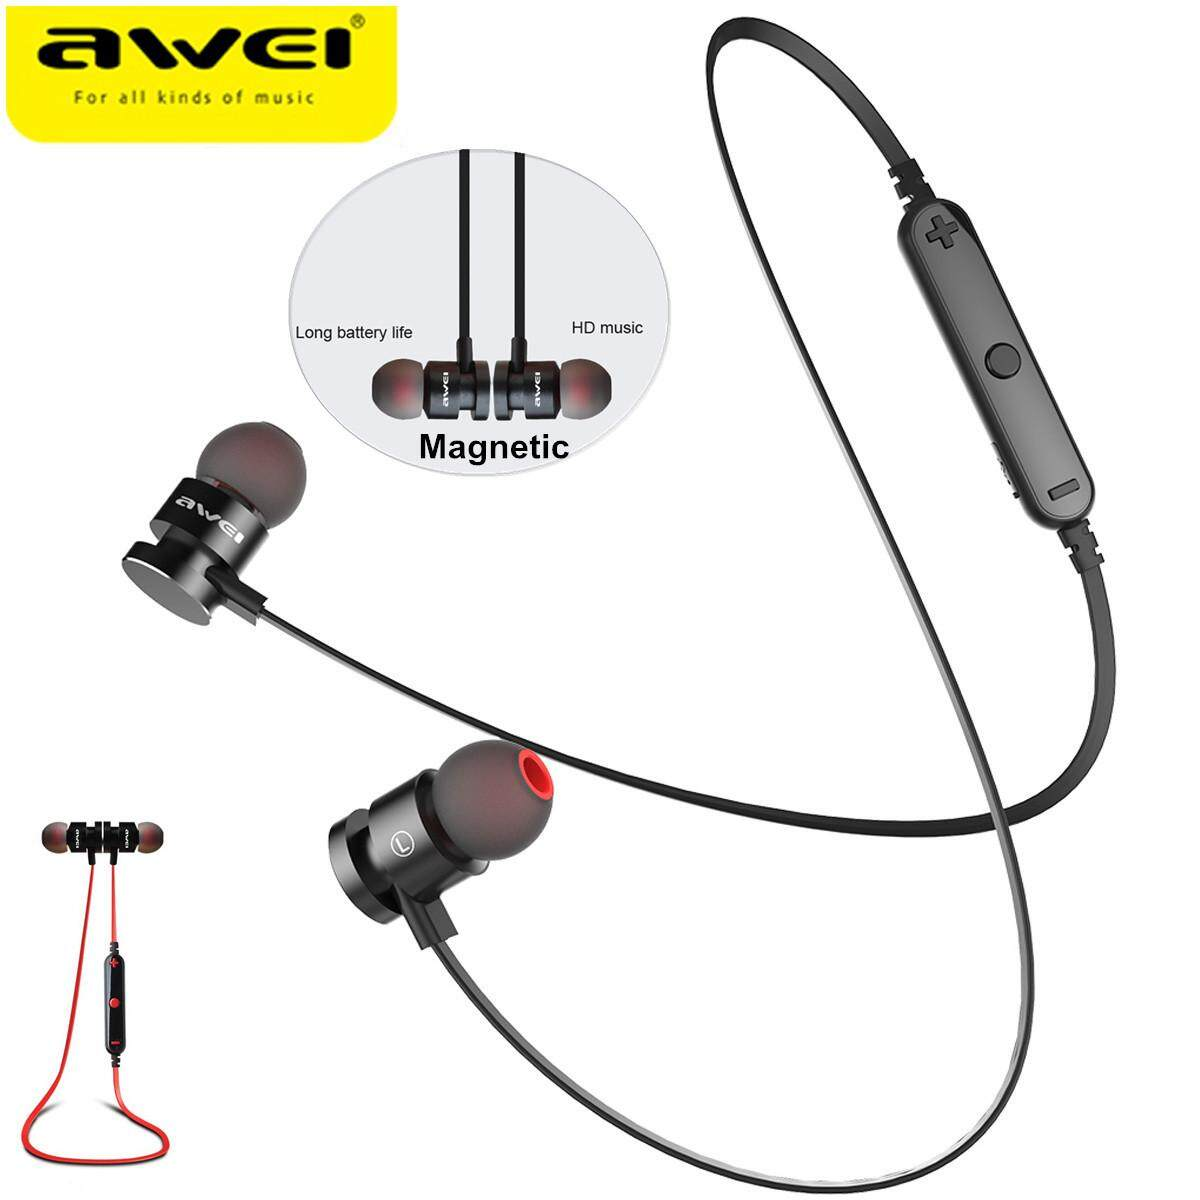 0db566d3b96 【Free Shipping + Flash Deal】AWEI T11 Sport Magnetic Wireless bluetooth  Headphone Headset For